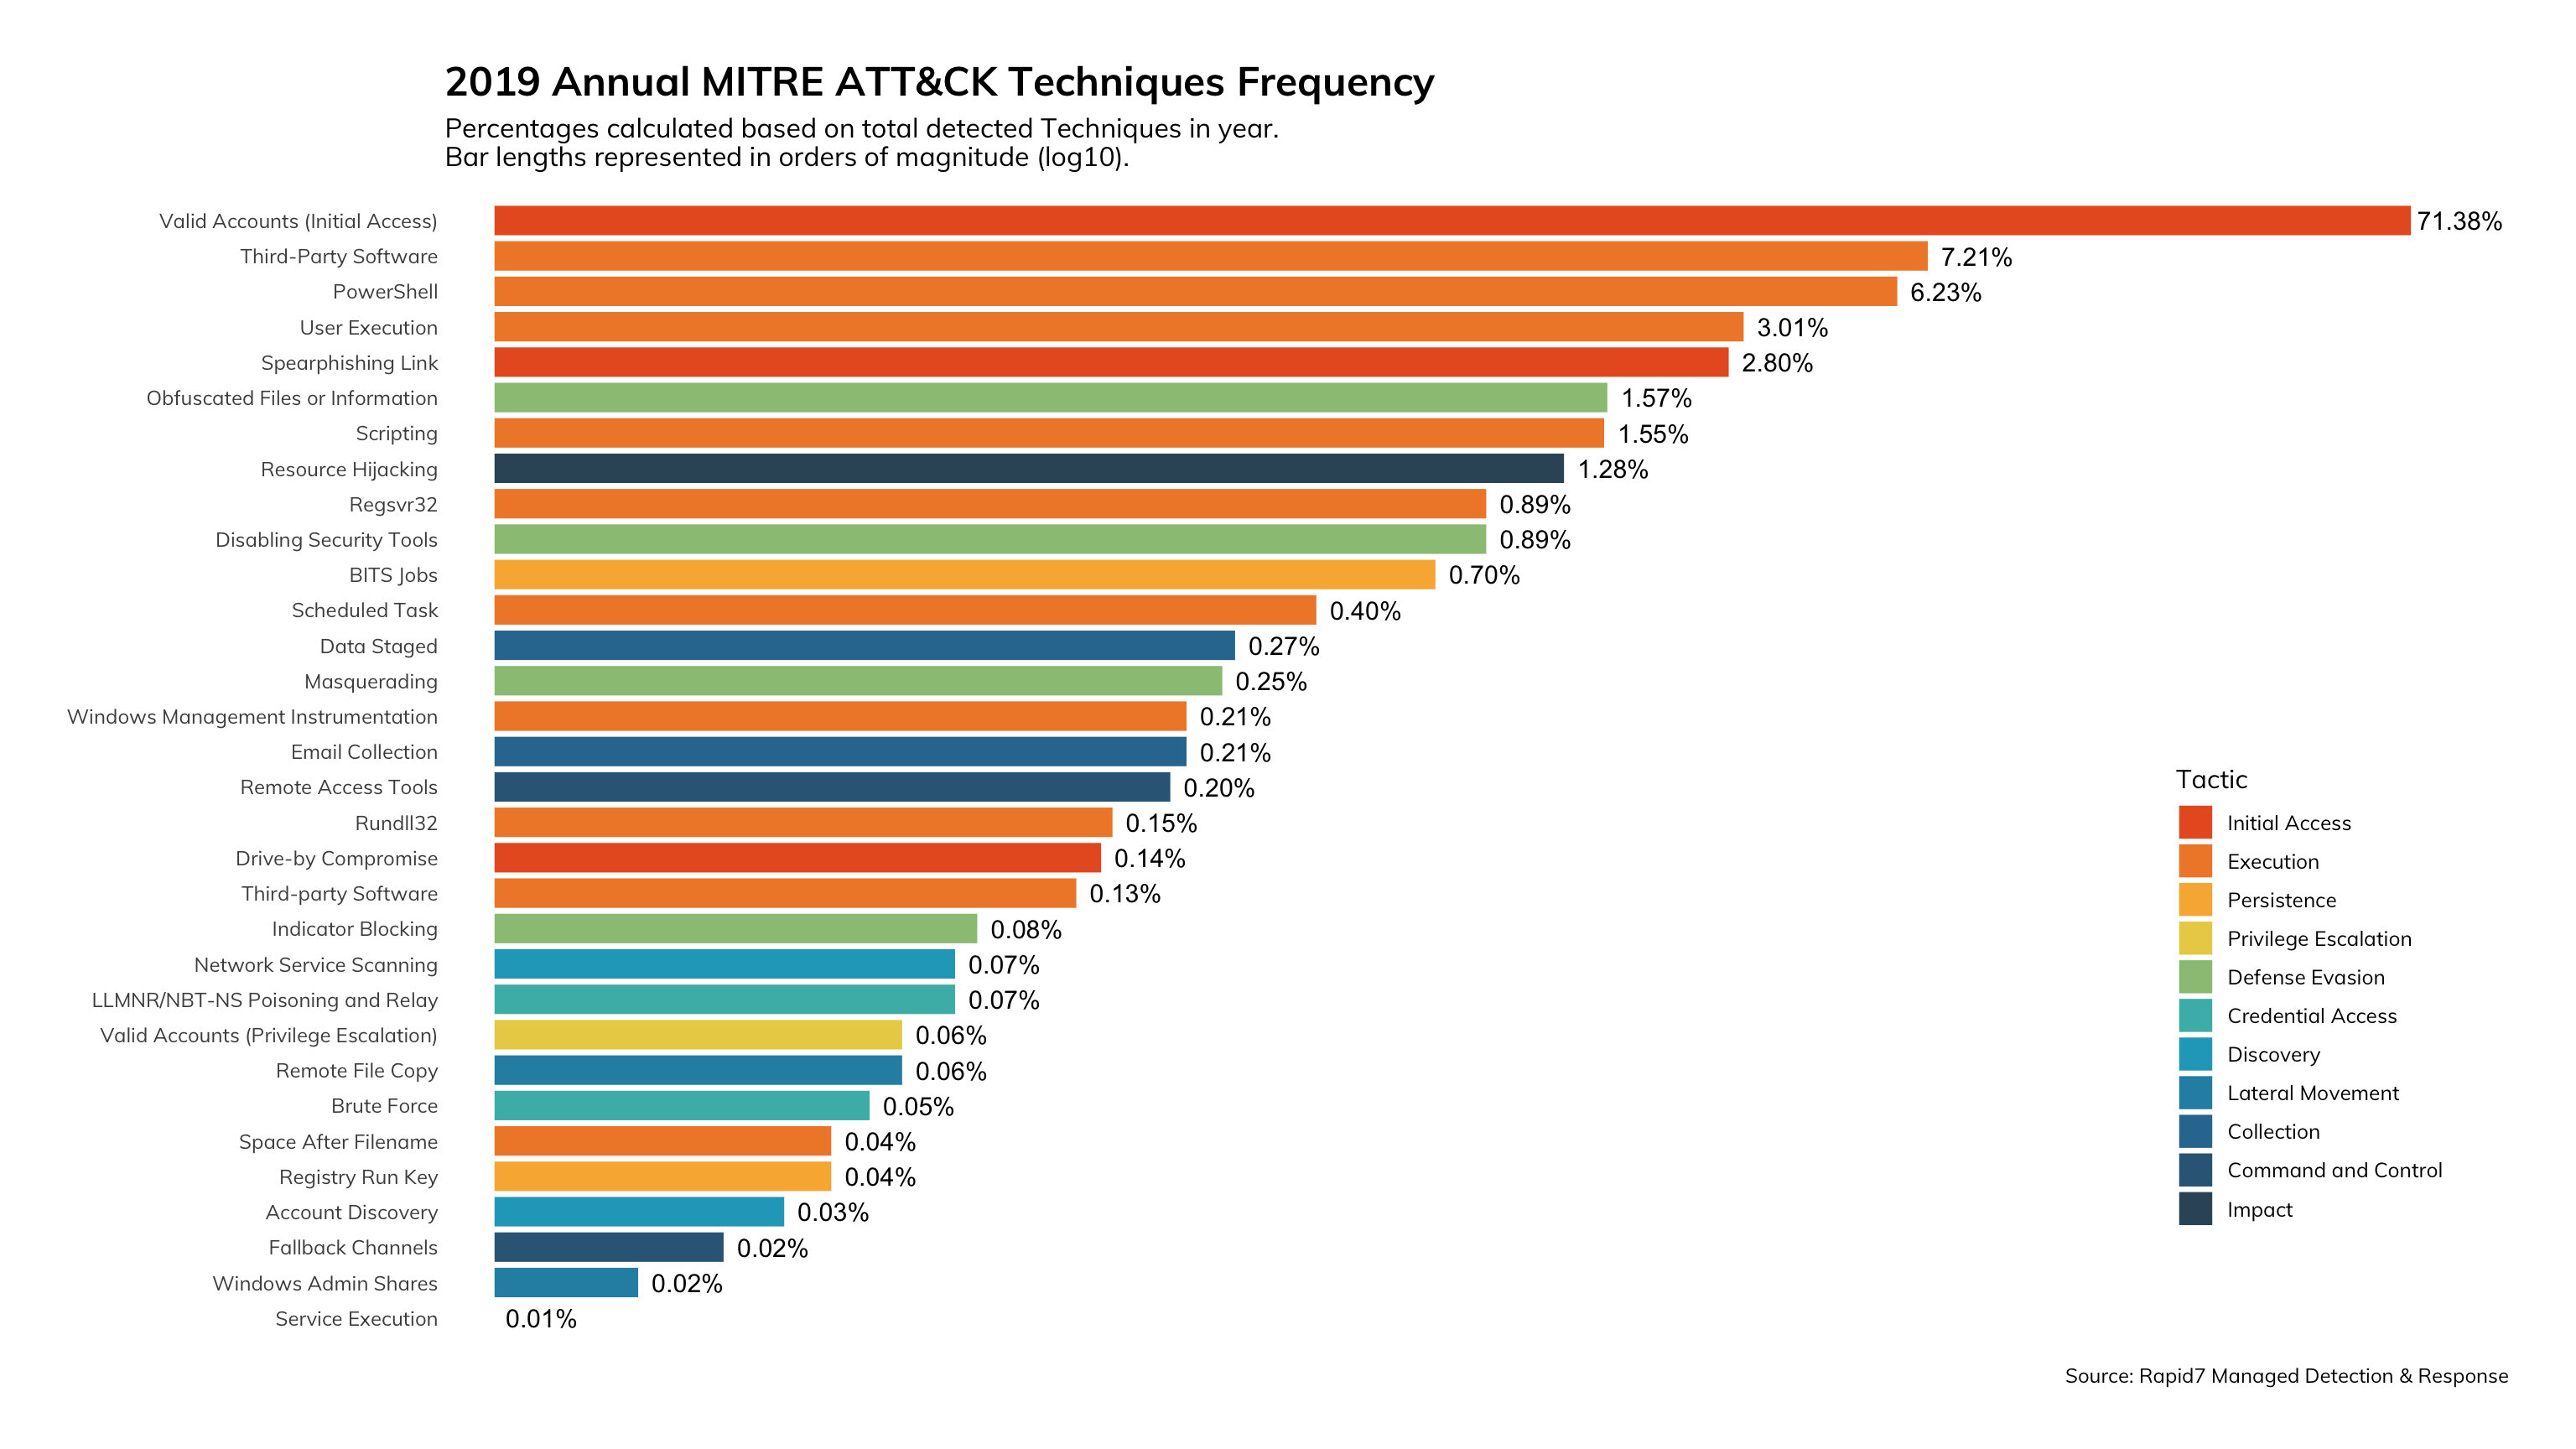 Figure 12: 2019 Annual MITRE ATT&CK Techniques by Frequency